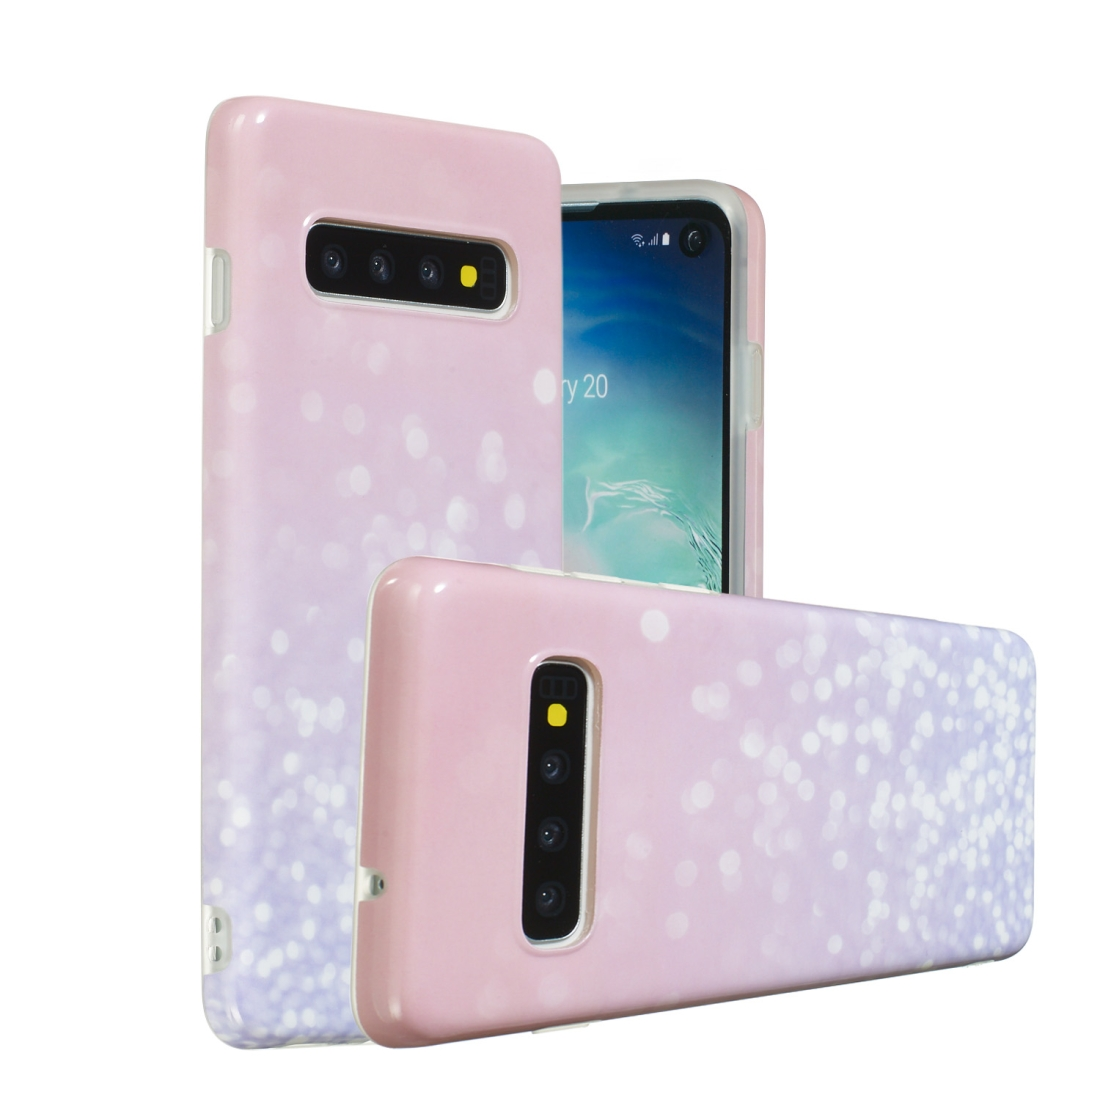 TPU Protective Case For Galaxy S10 Plus (Bright Pink)